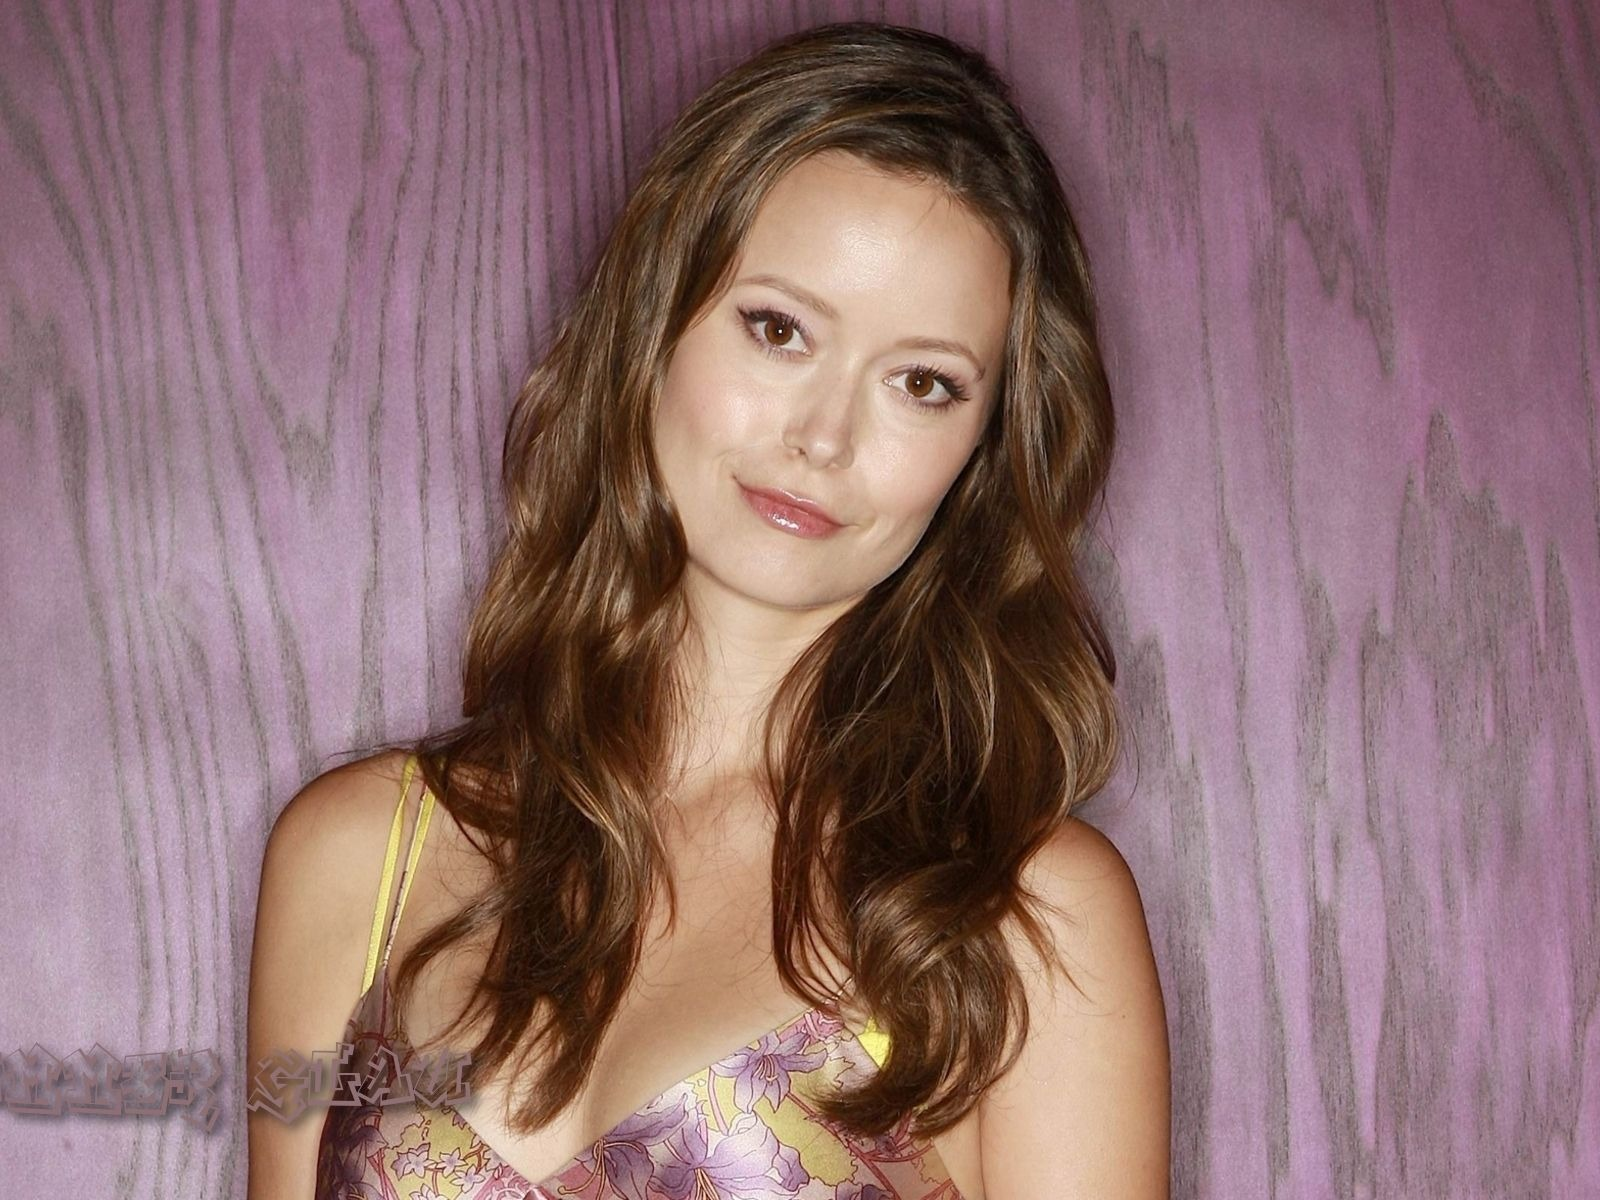 Summer Glau #007 - 1600x1200 Wallpapers Pictures Photos Images